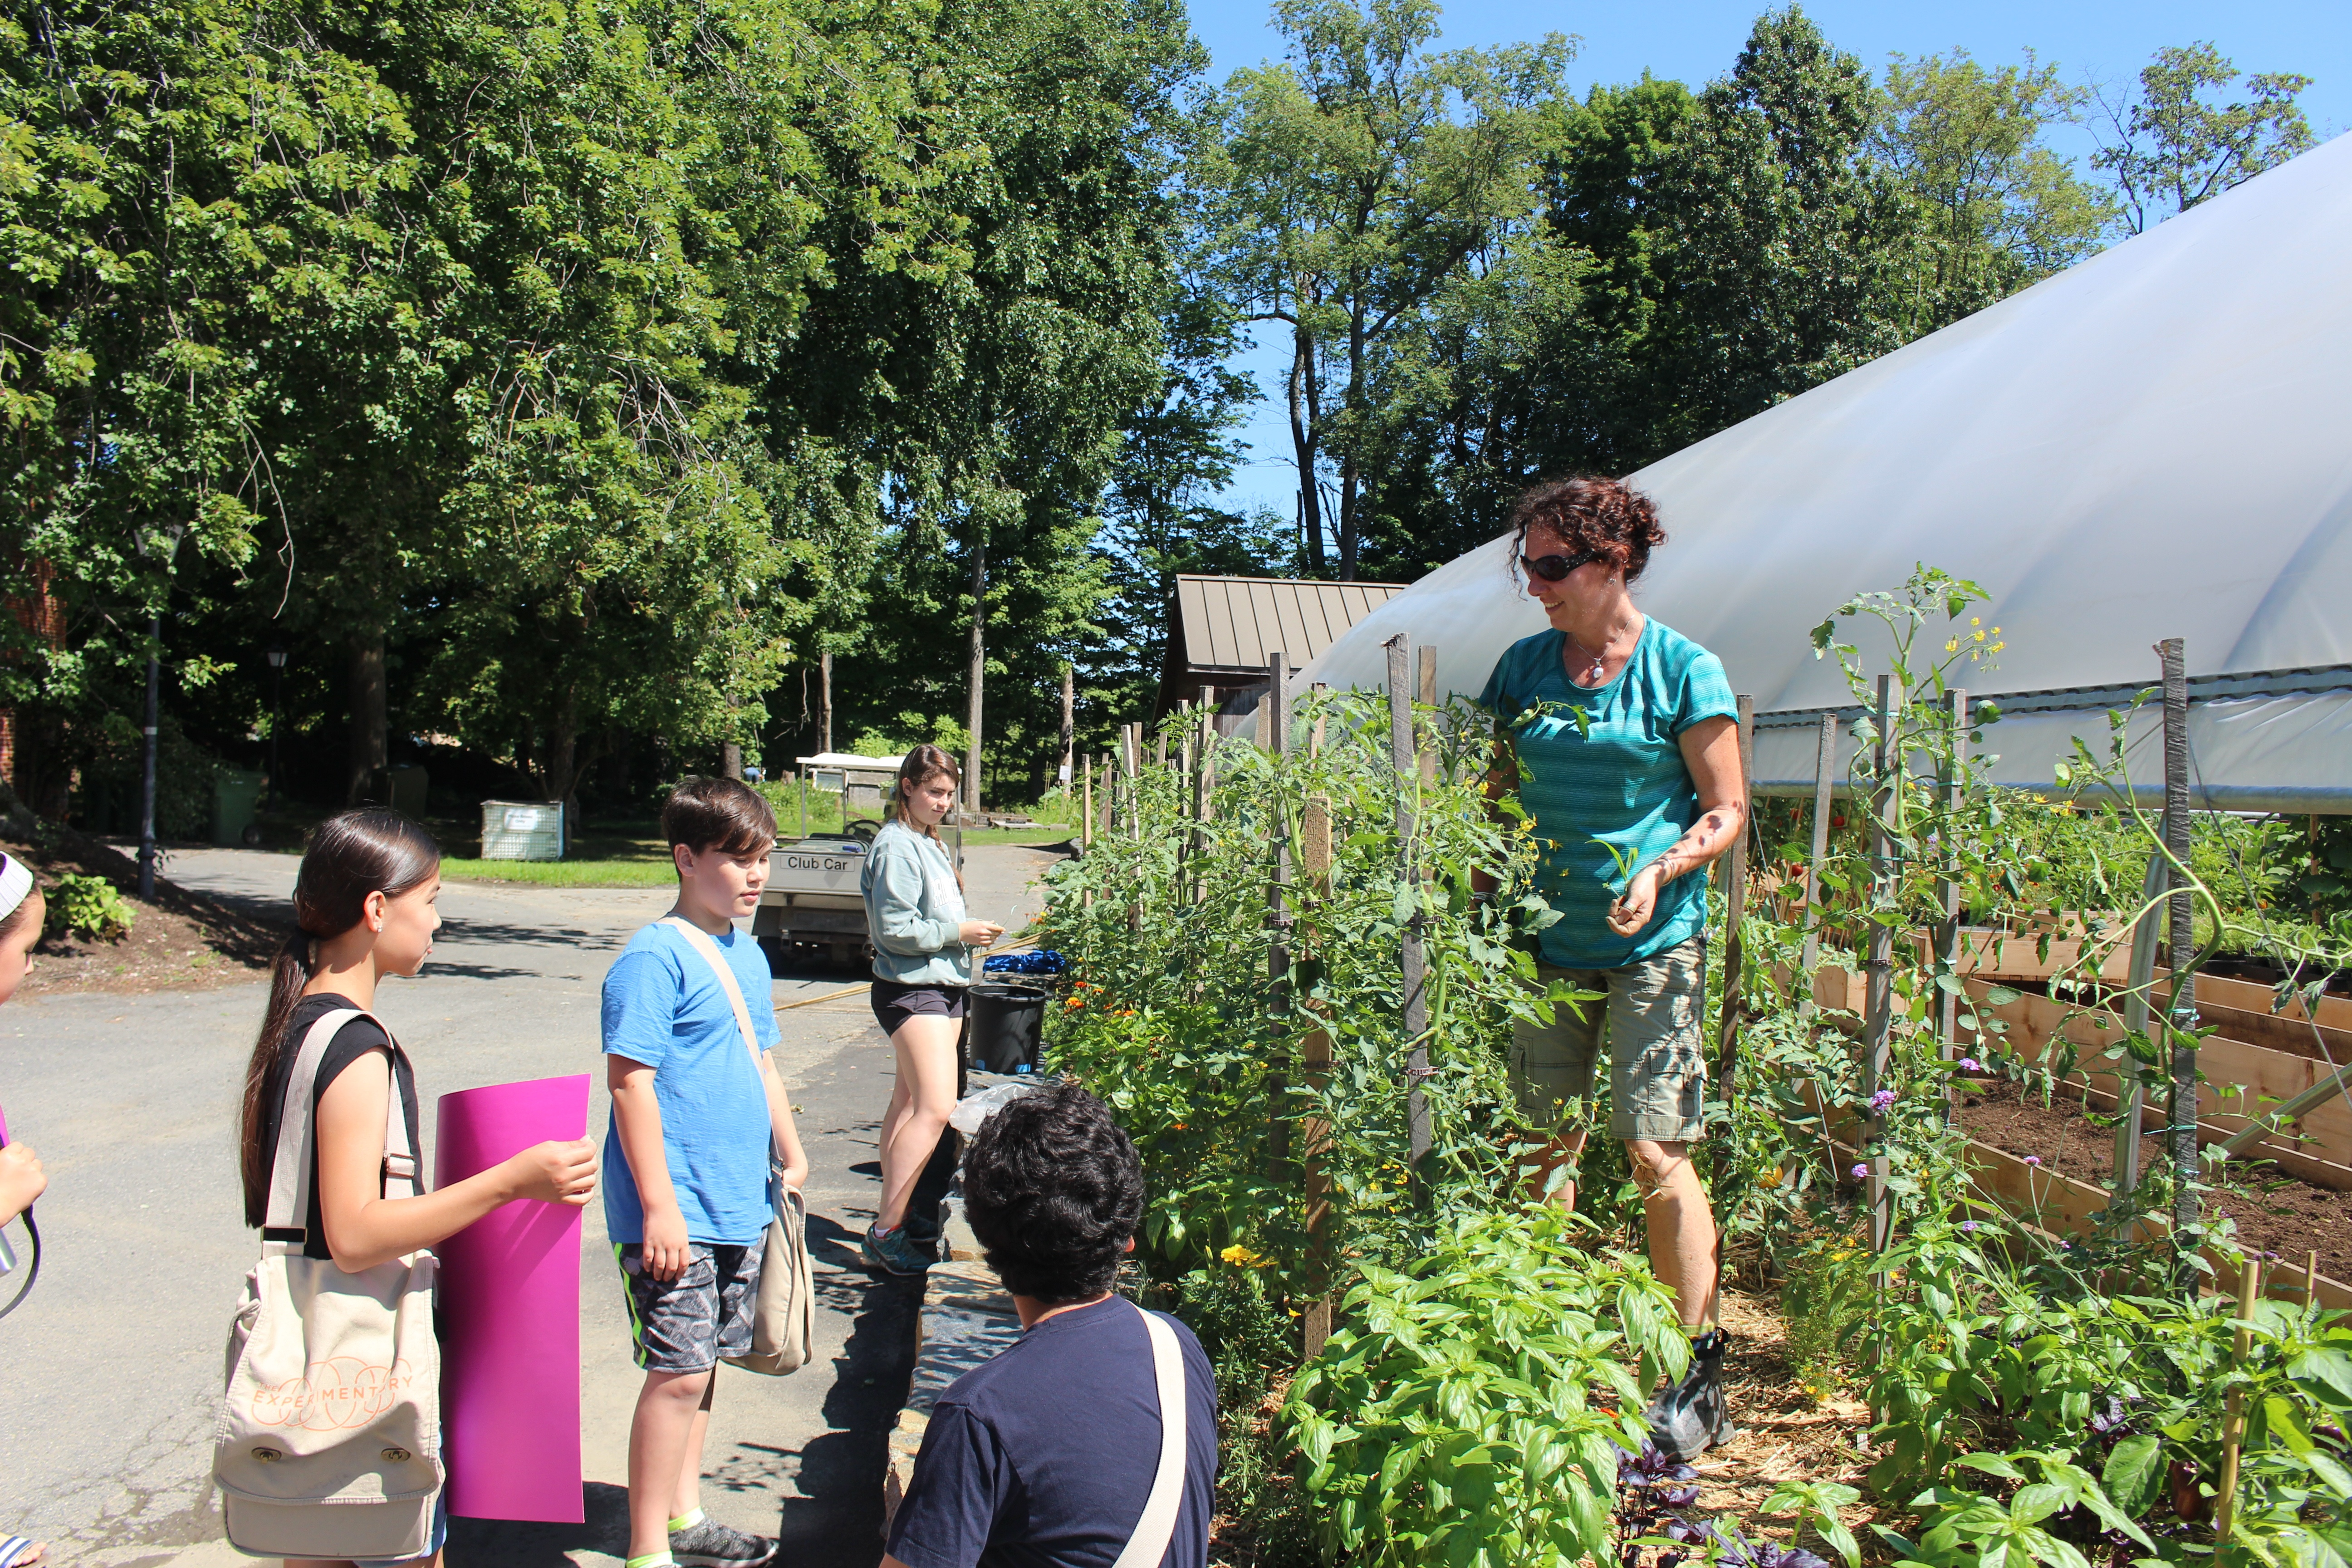 Students stop in to Greenhouse on a beautiful New England summer day.